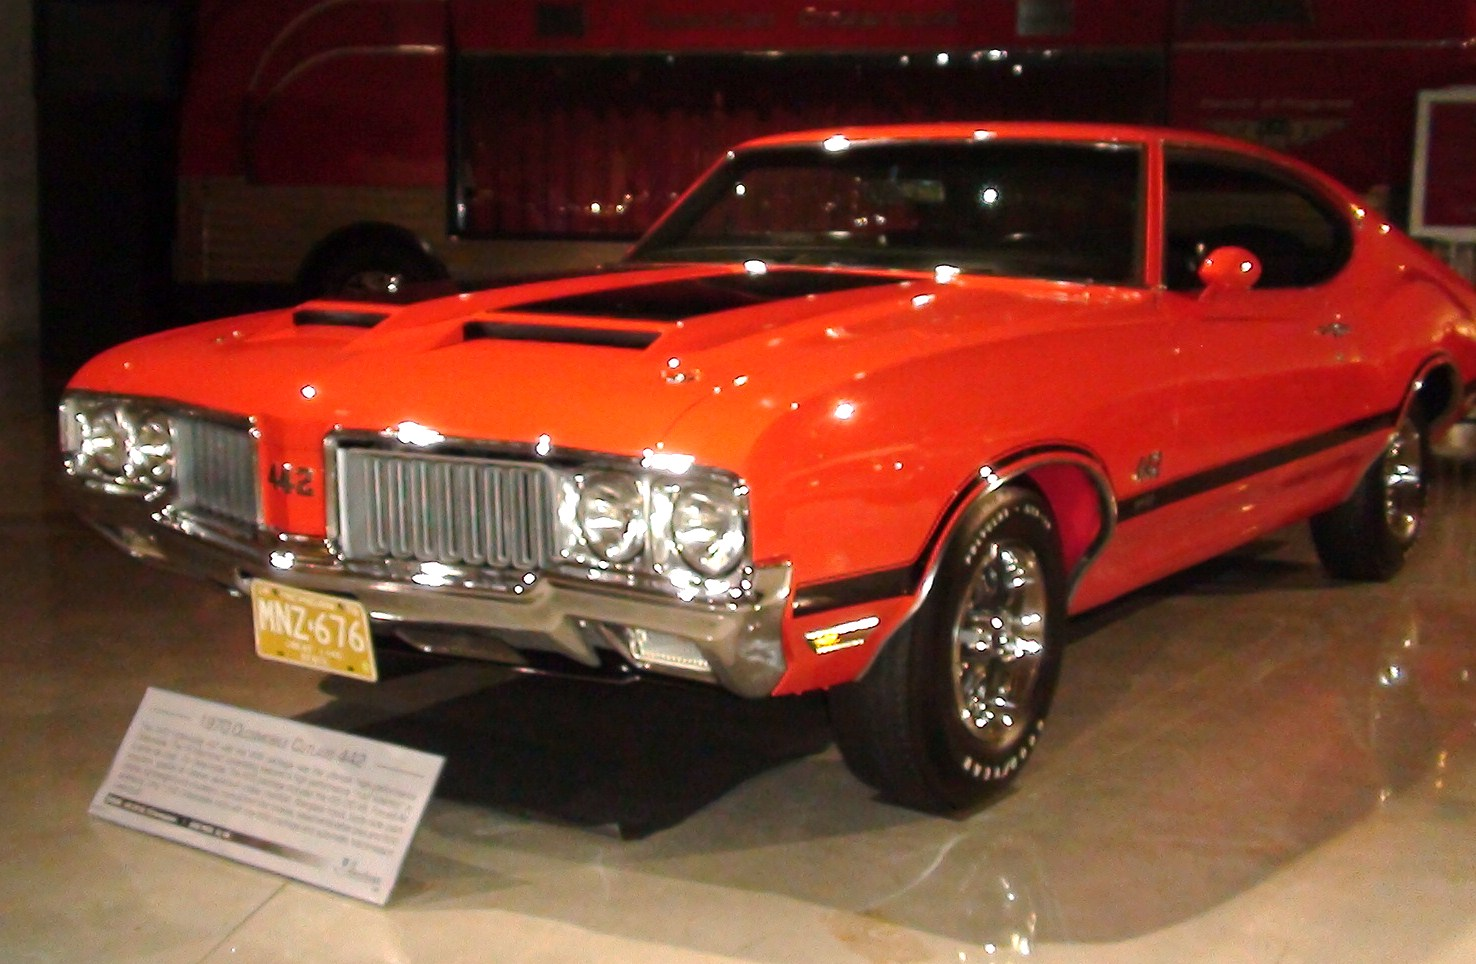 File:GM Heritage Center - 056 - Cars - 442.jpg